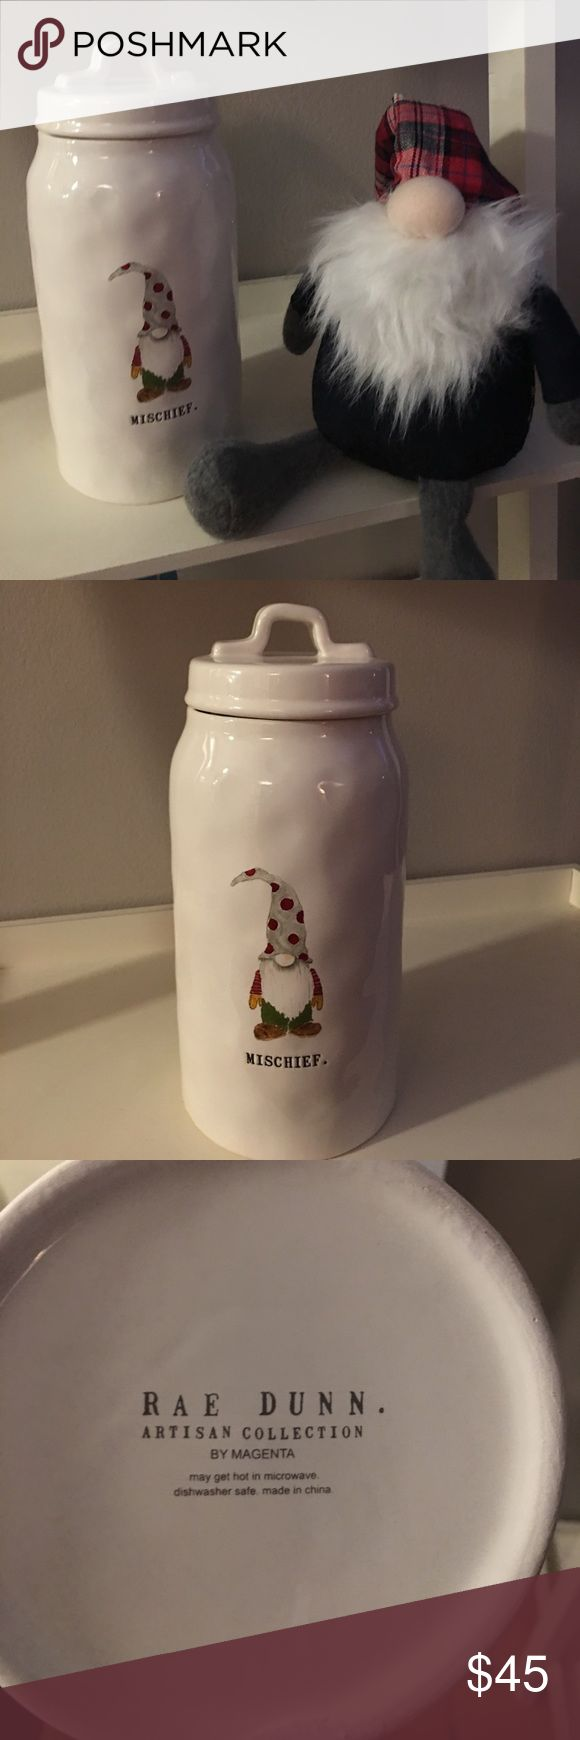 Brand new Rae Dunn Christmas canister Rae Dunn Christmas Elf canister! This is so cute and looks even better in person. Never used brand new. Rae Dunn Other